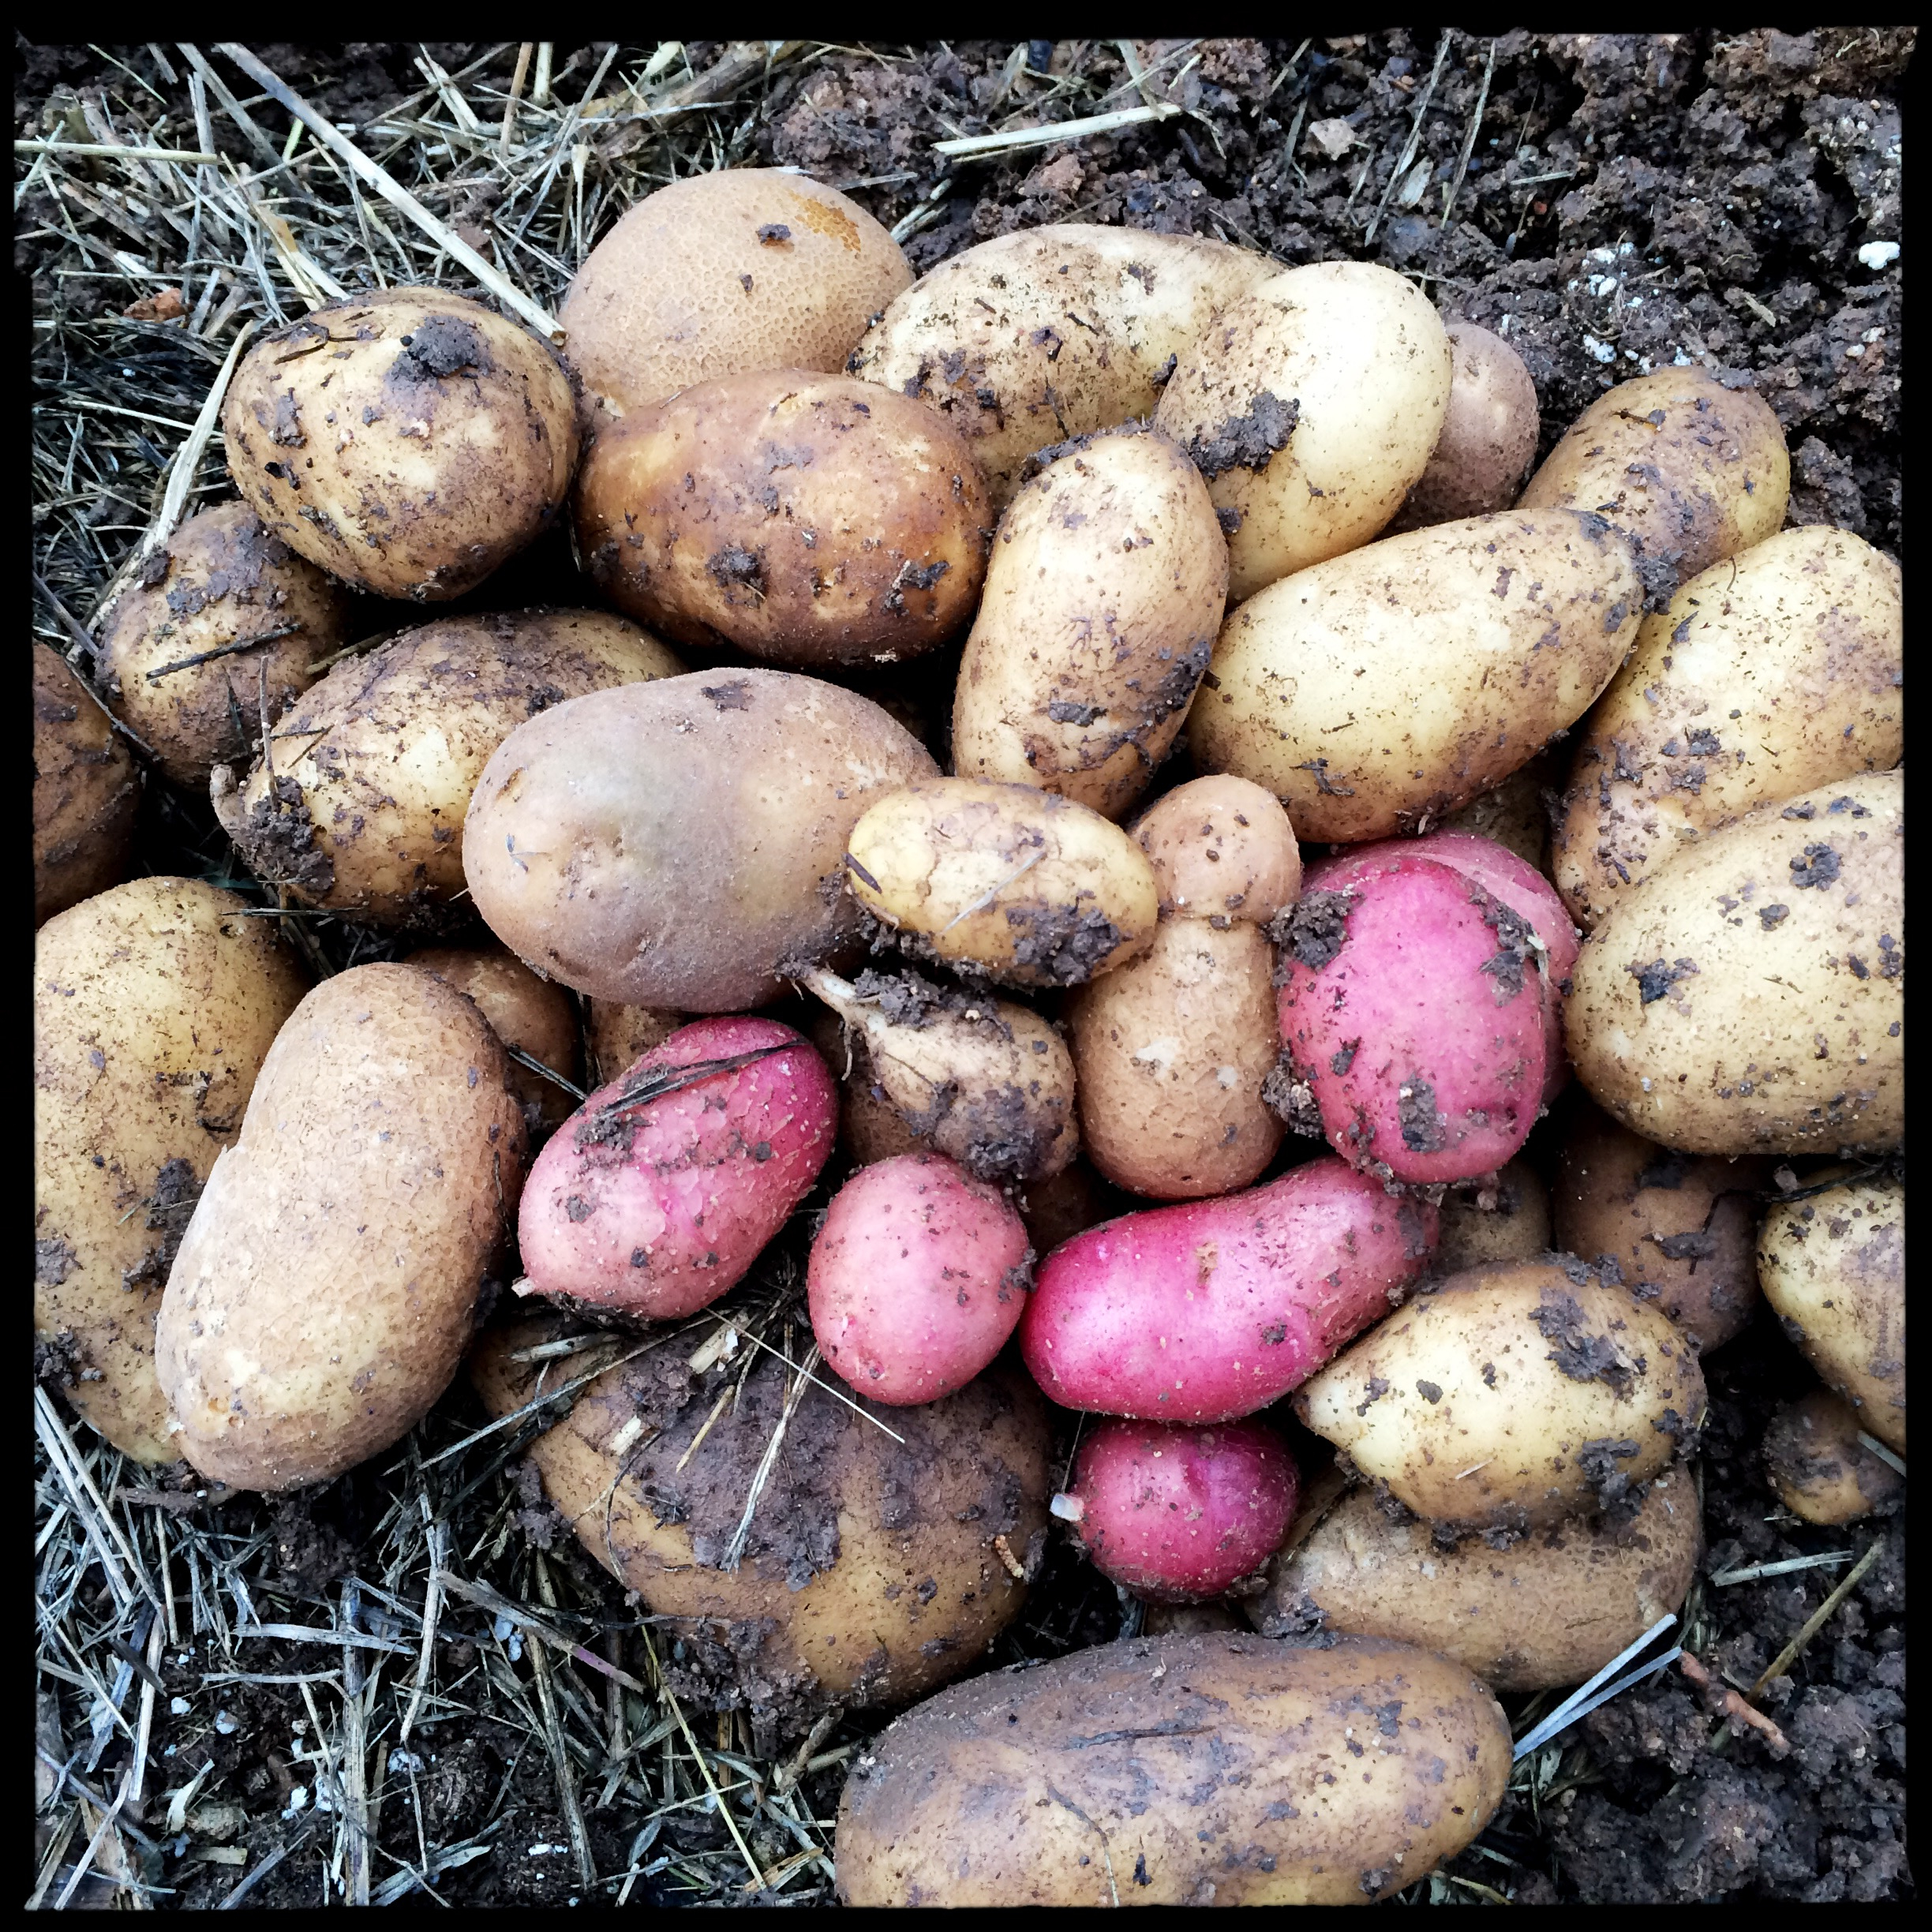 Potatoes went in late and spontaneously this spring, in a clayey bed; I just cut up some organic grocery store potatoes that were past their prime and stuck them in the ground. Despite all the spring rain compacting the soil, and me never seeing the tragic-looking plants flower, the Potato's drive to reproduce gave me a decent little harvest.